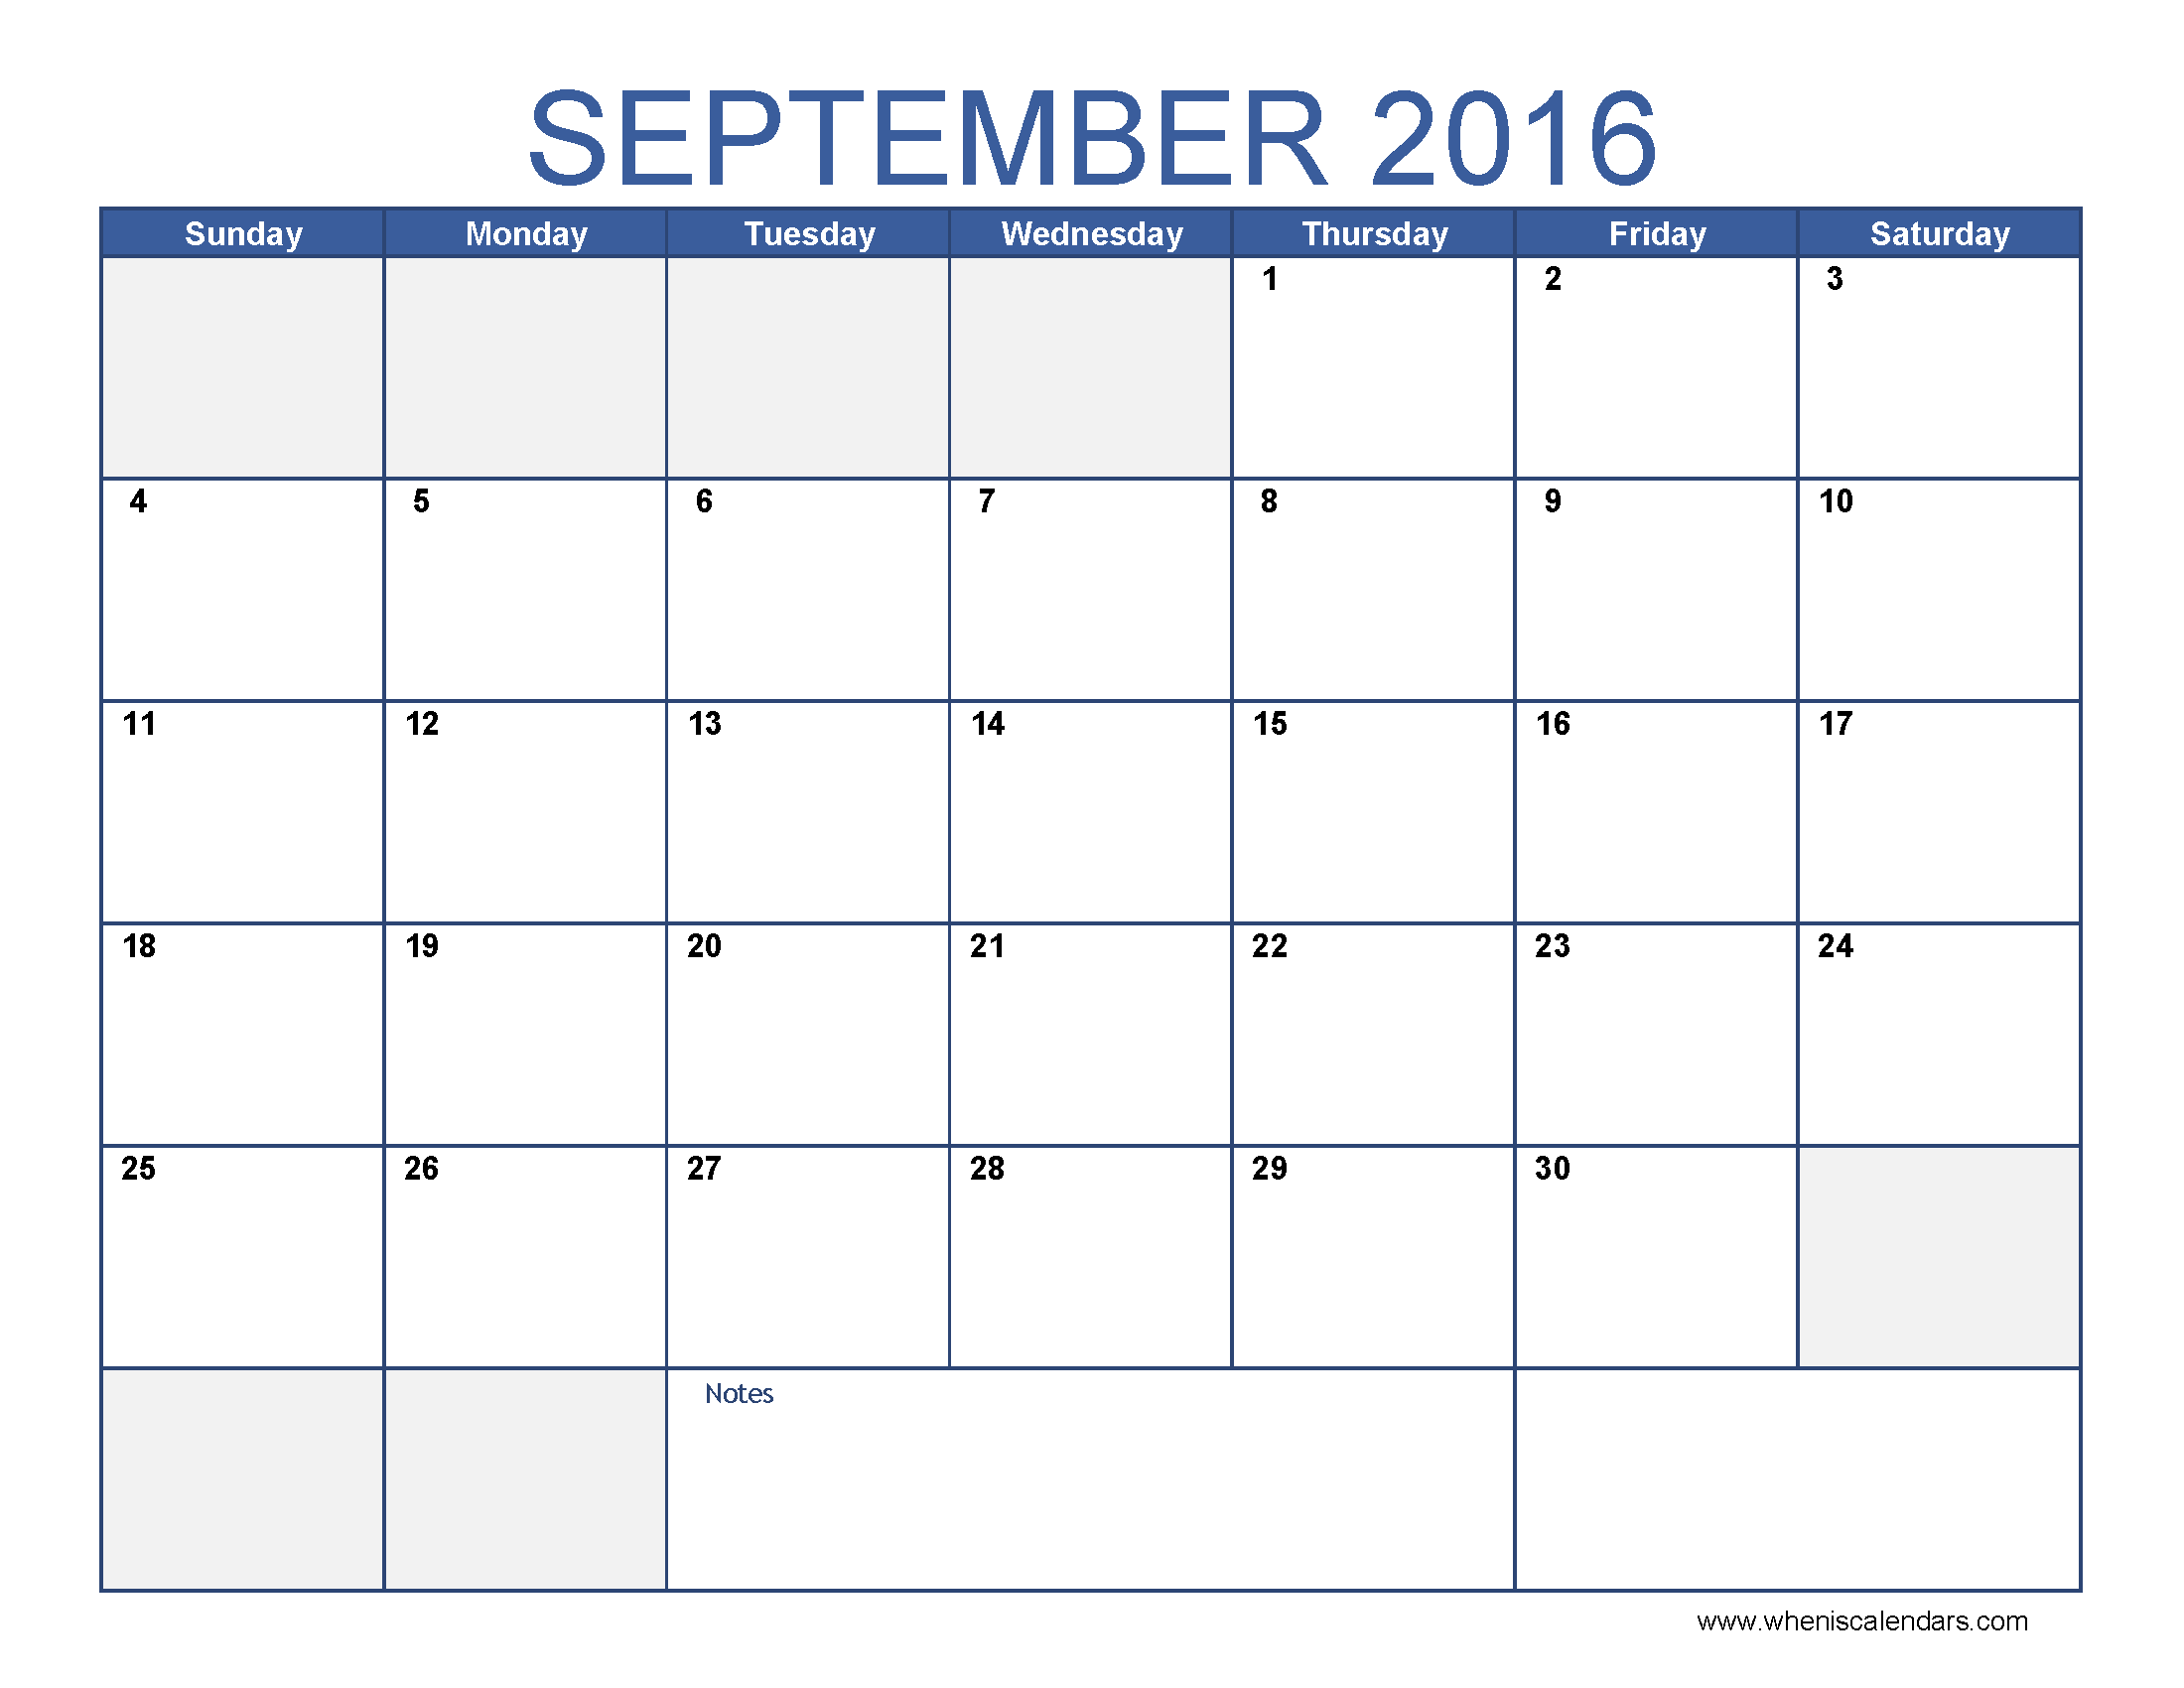 Disney clipart september calendar 2016.